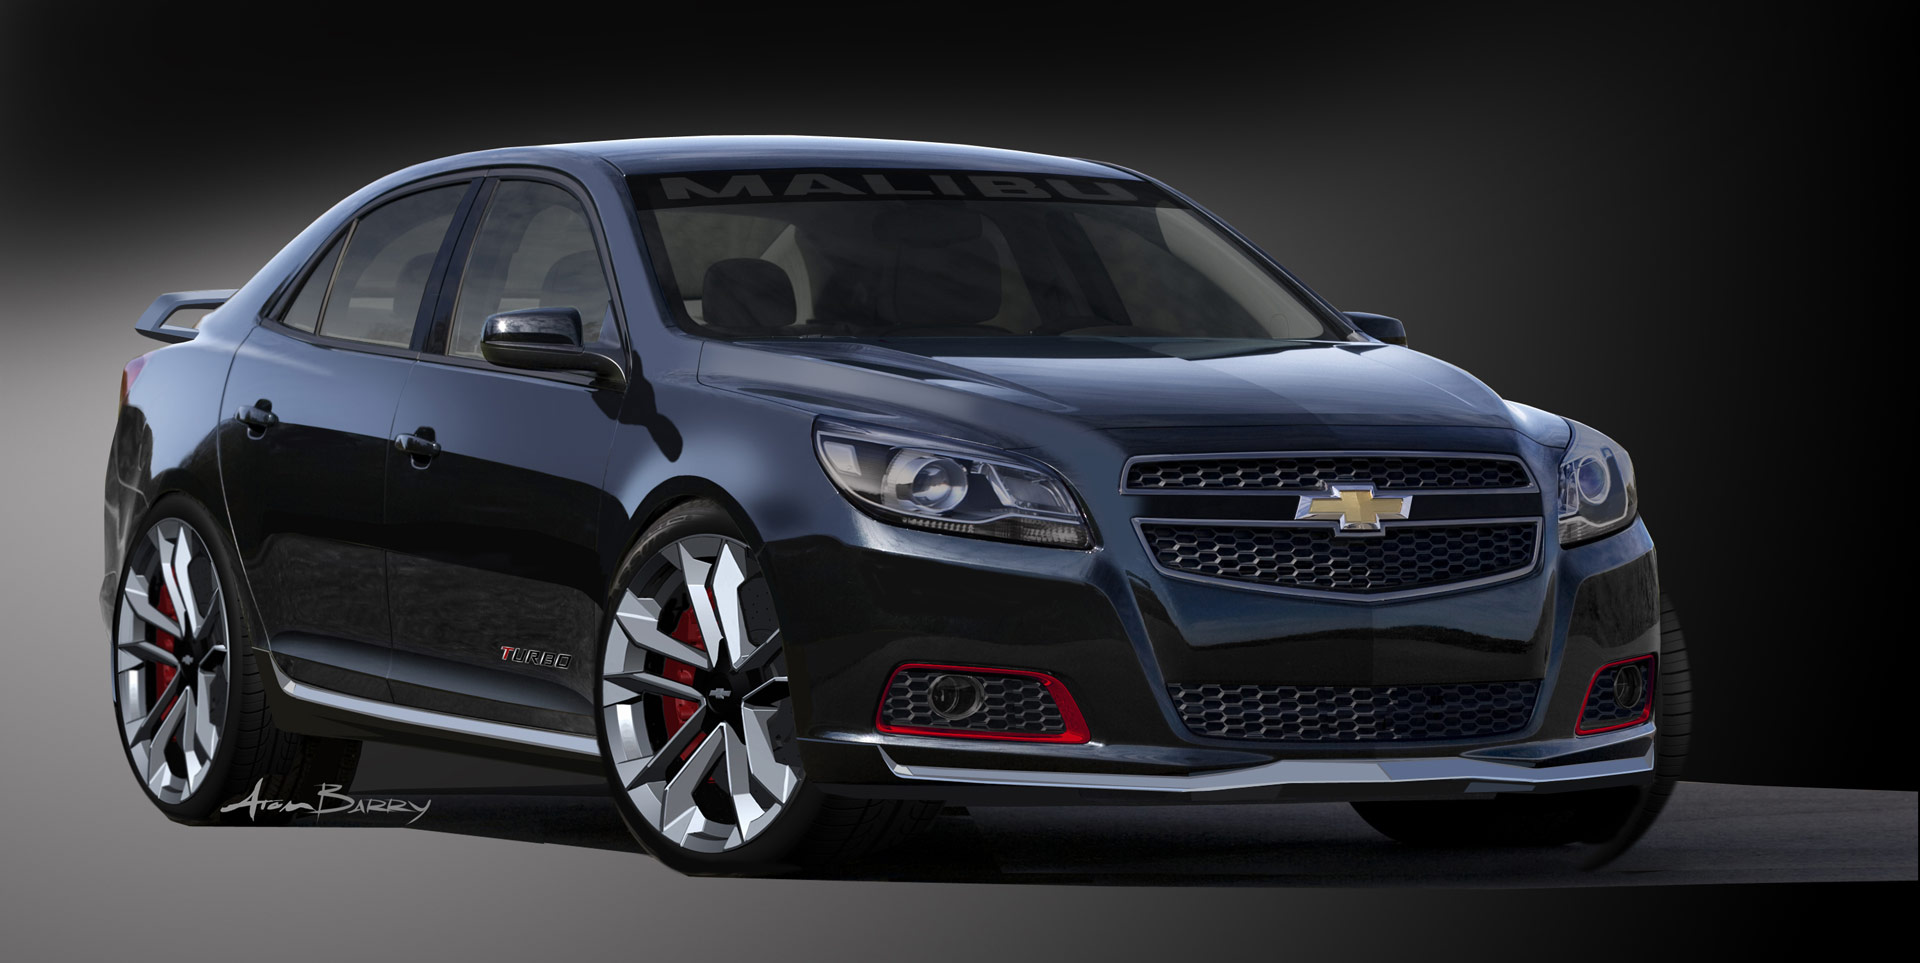 2013 Chevrolet Malibu Turbo Performance Concept News and Information